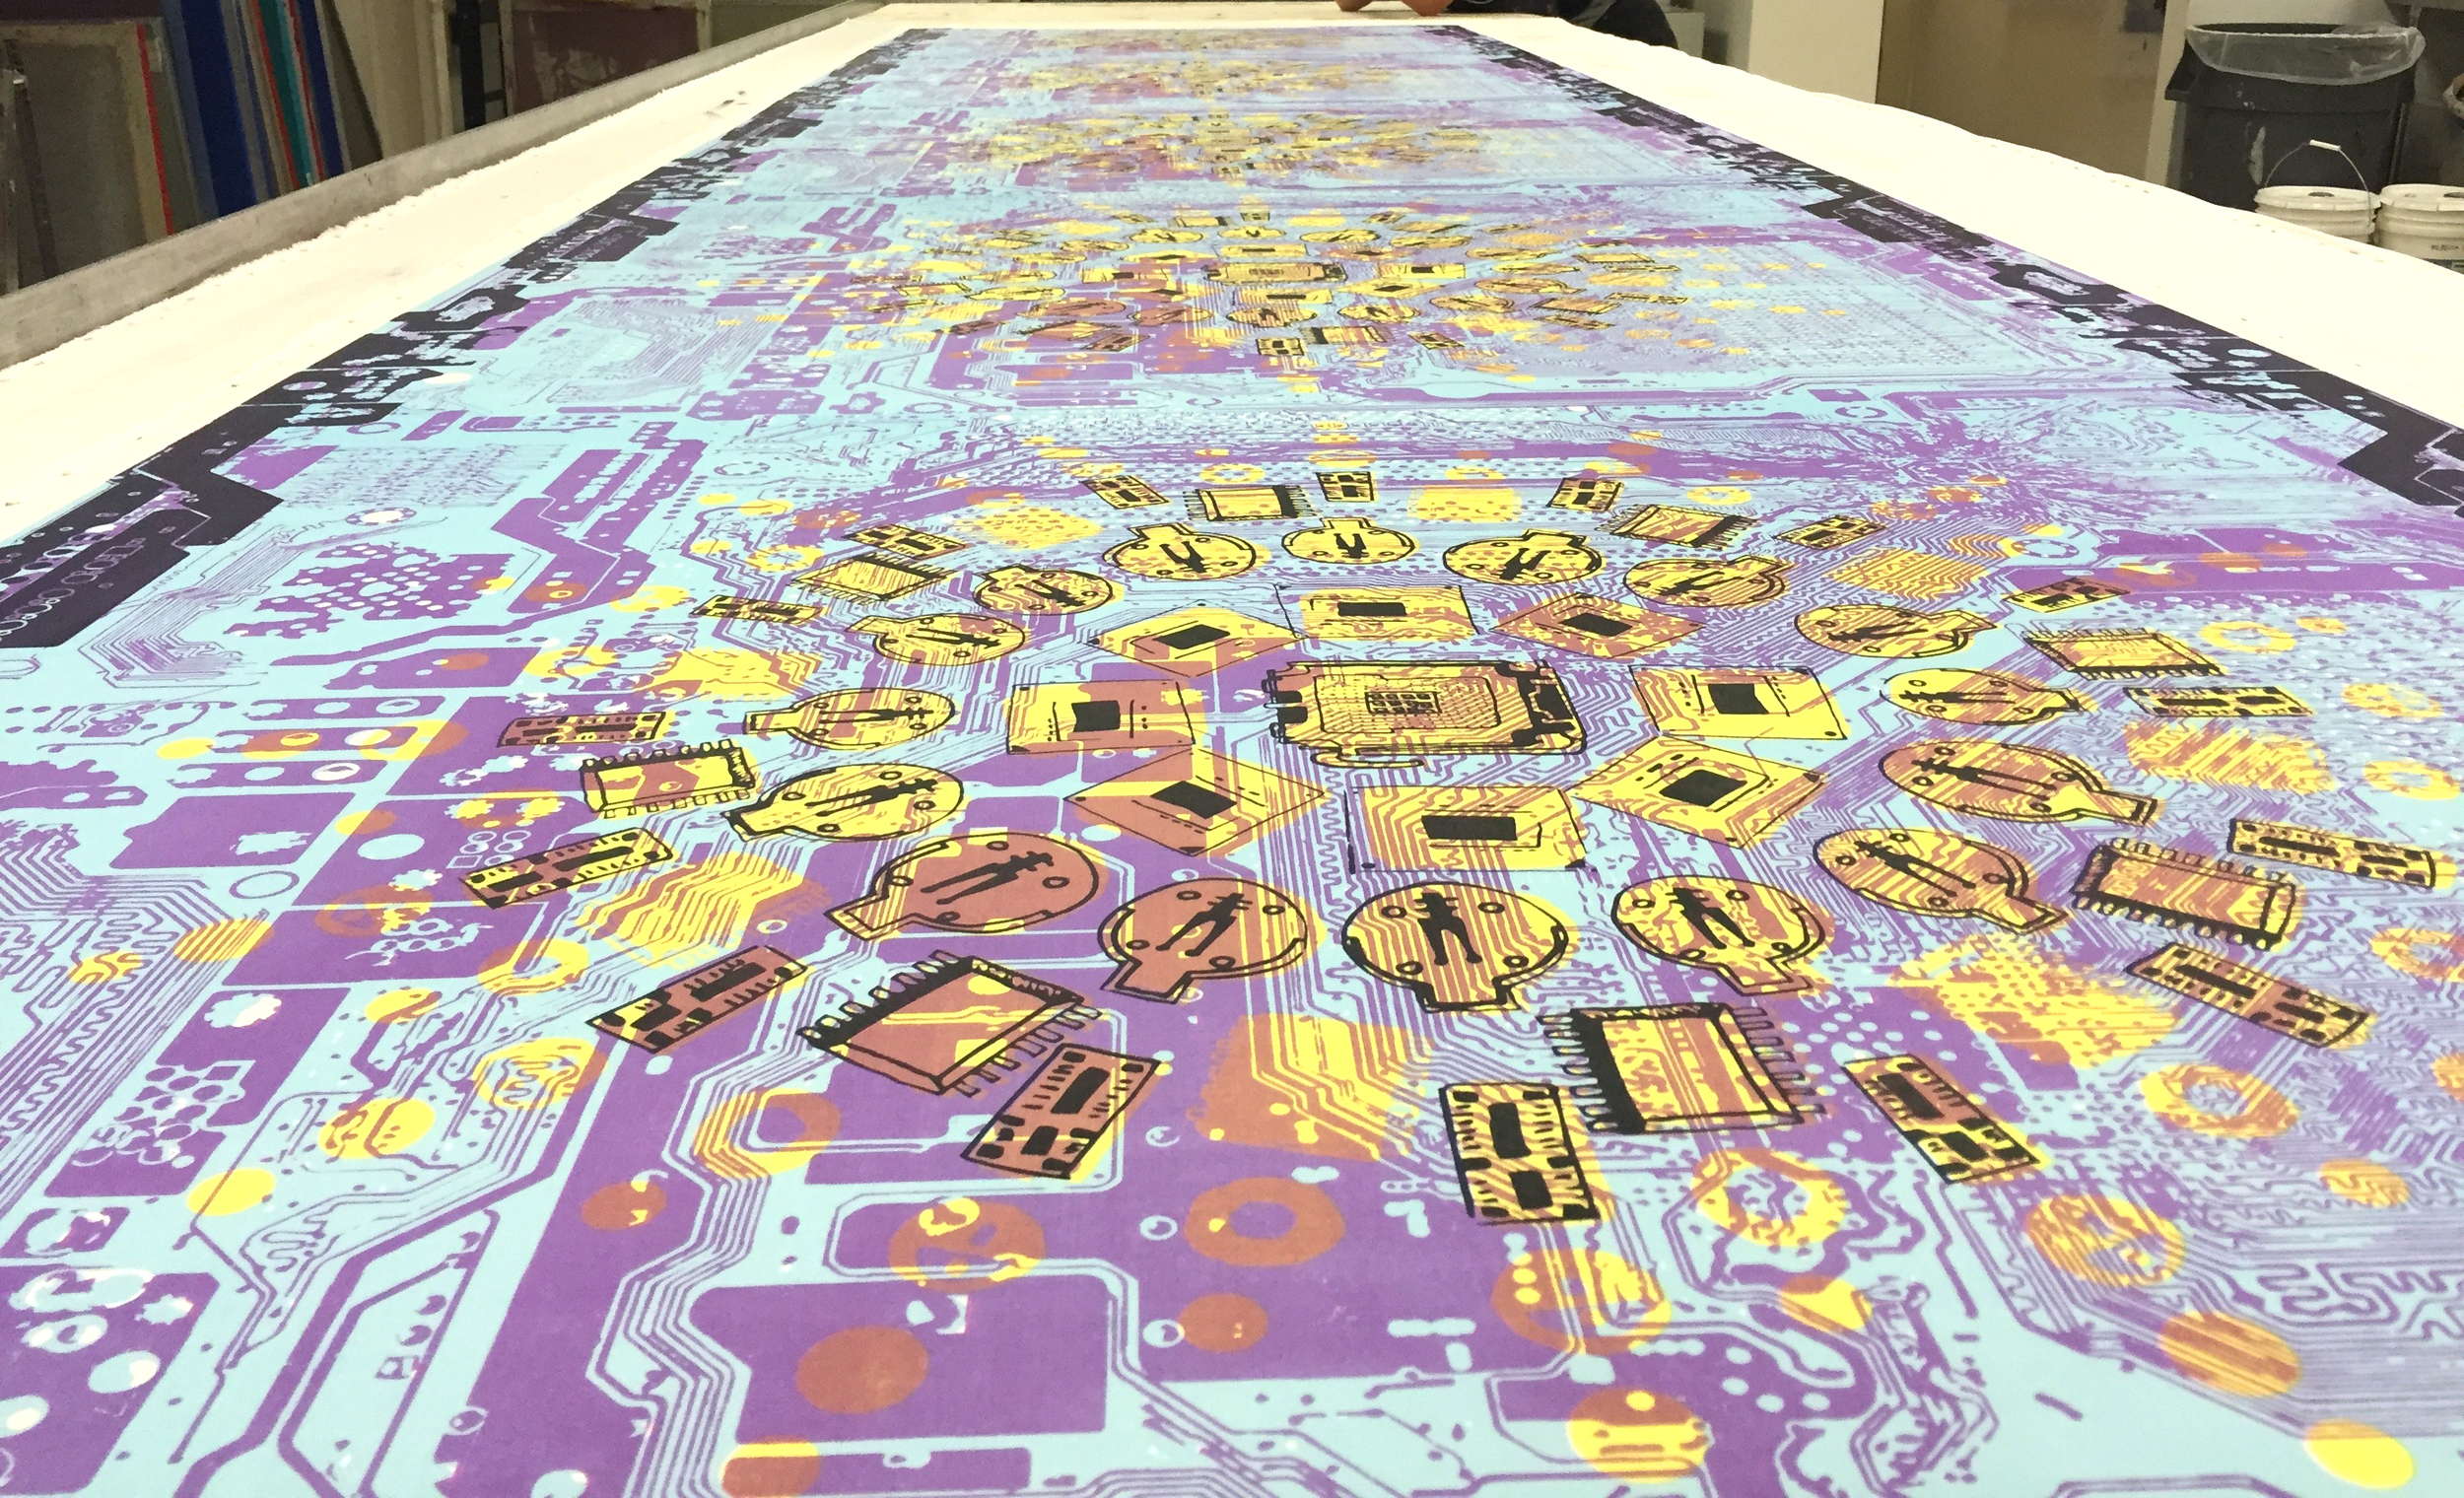 CircuitBoard_Yardage_Detail_PurpleYellowDe.jpg